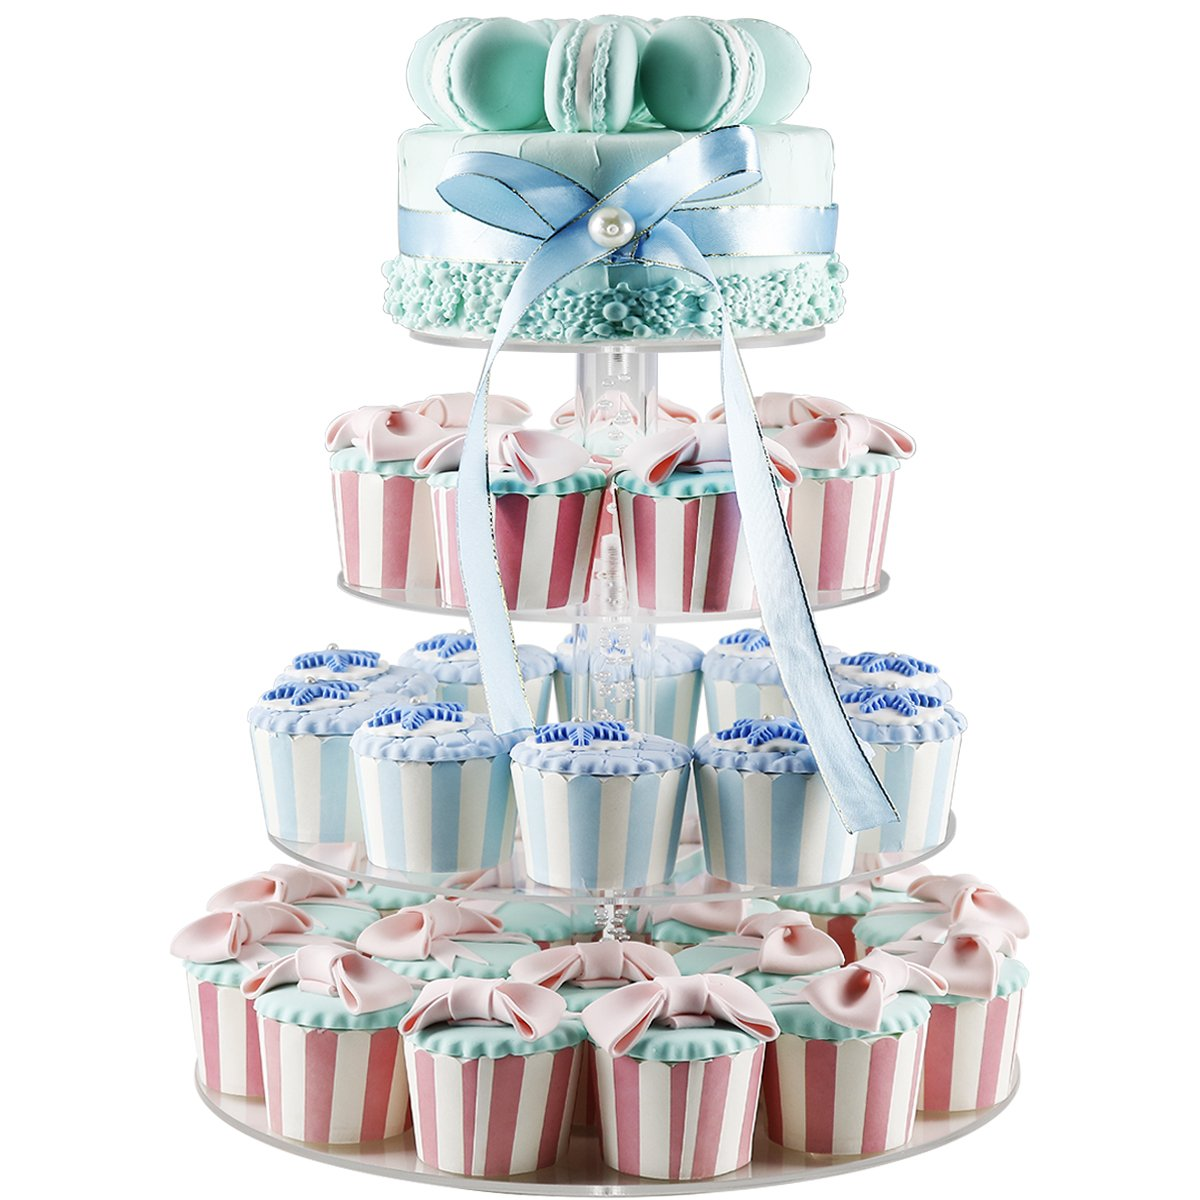 2018 New Style 4 Tiers Cupcake Stands Tower - Clear Acrylic Display Holder Tree - Tiered Cupcake Display- Tiered Round Pastry Stand Dessert Stands Wedding Cake Stands For Parties Birthday - DYCacrlic by DYCacrlic (Image #5)